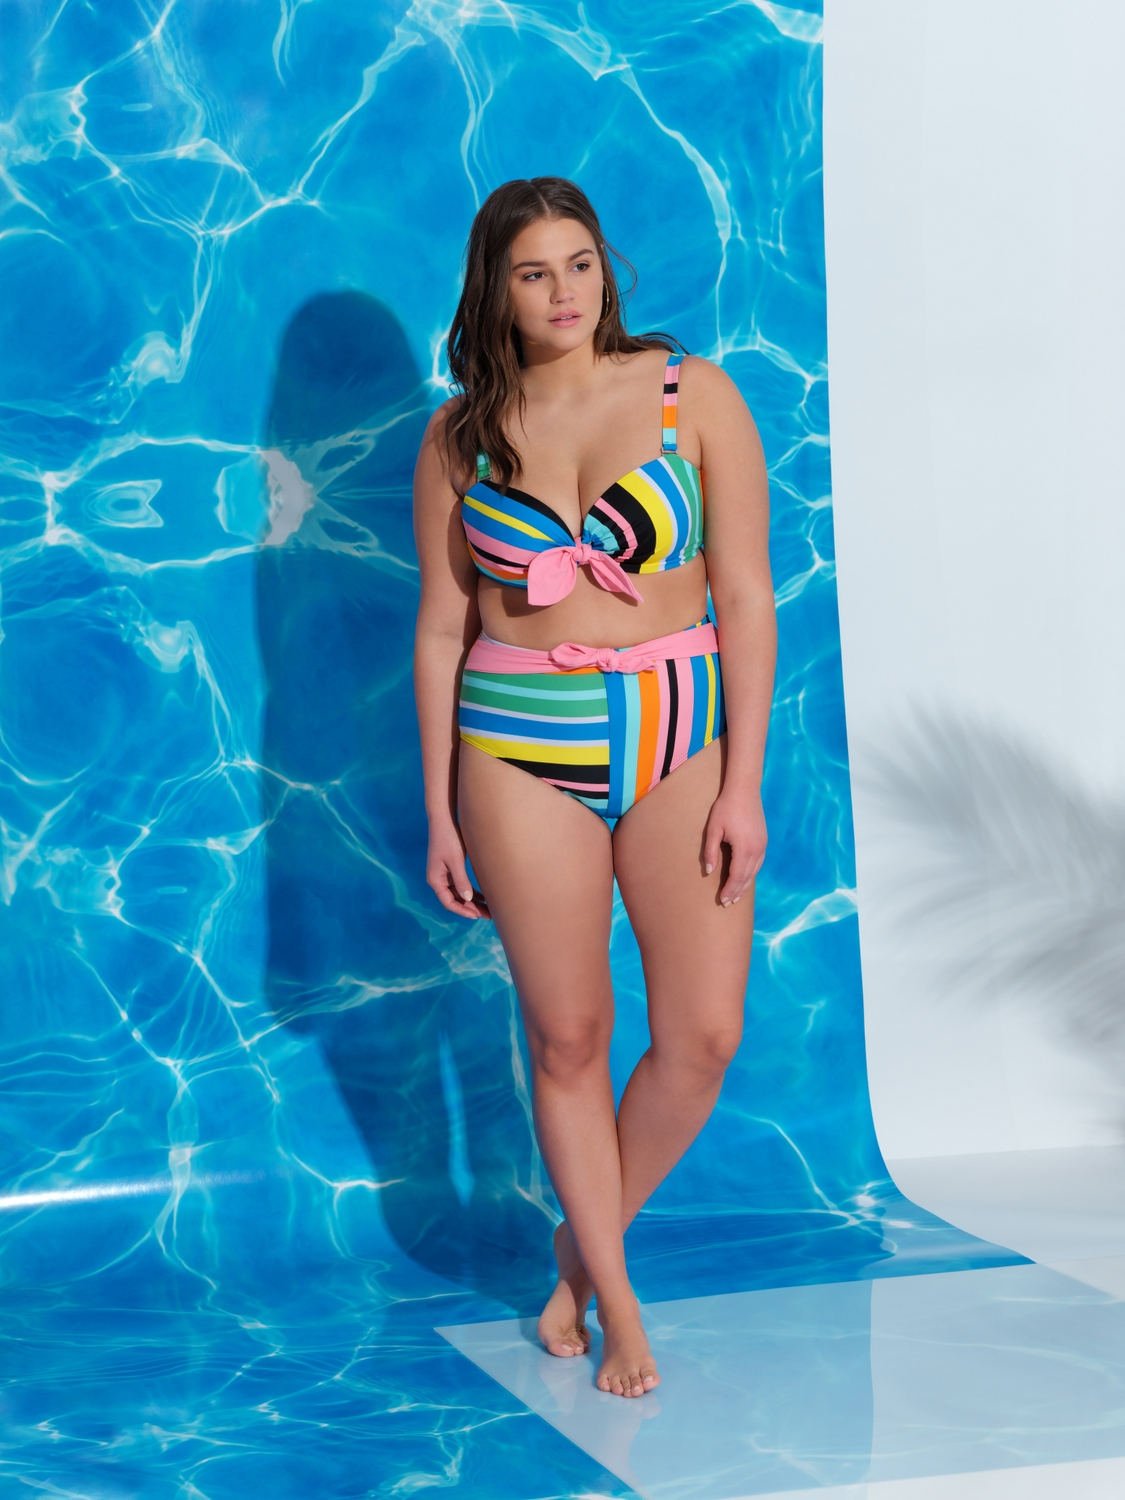 c3c6cf5af1 First Look at the 2019 Eloquii Plus Size Swim Collection!